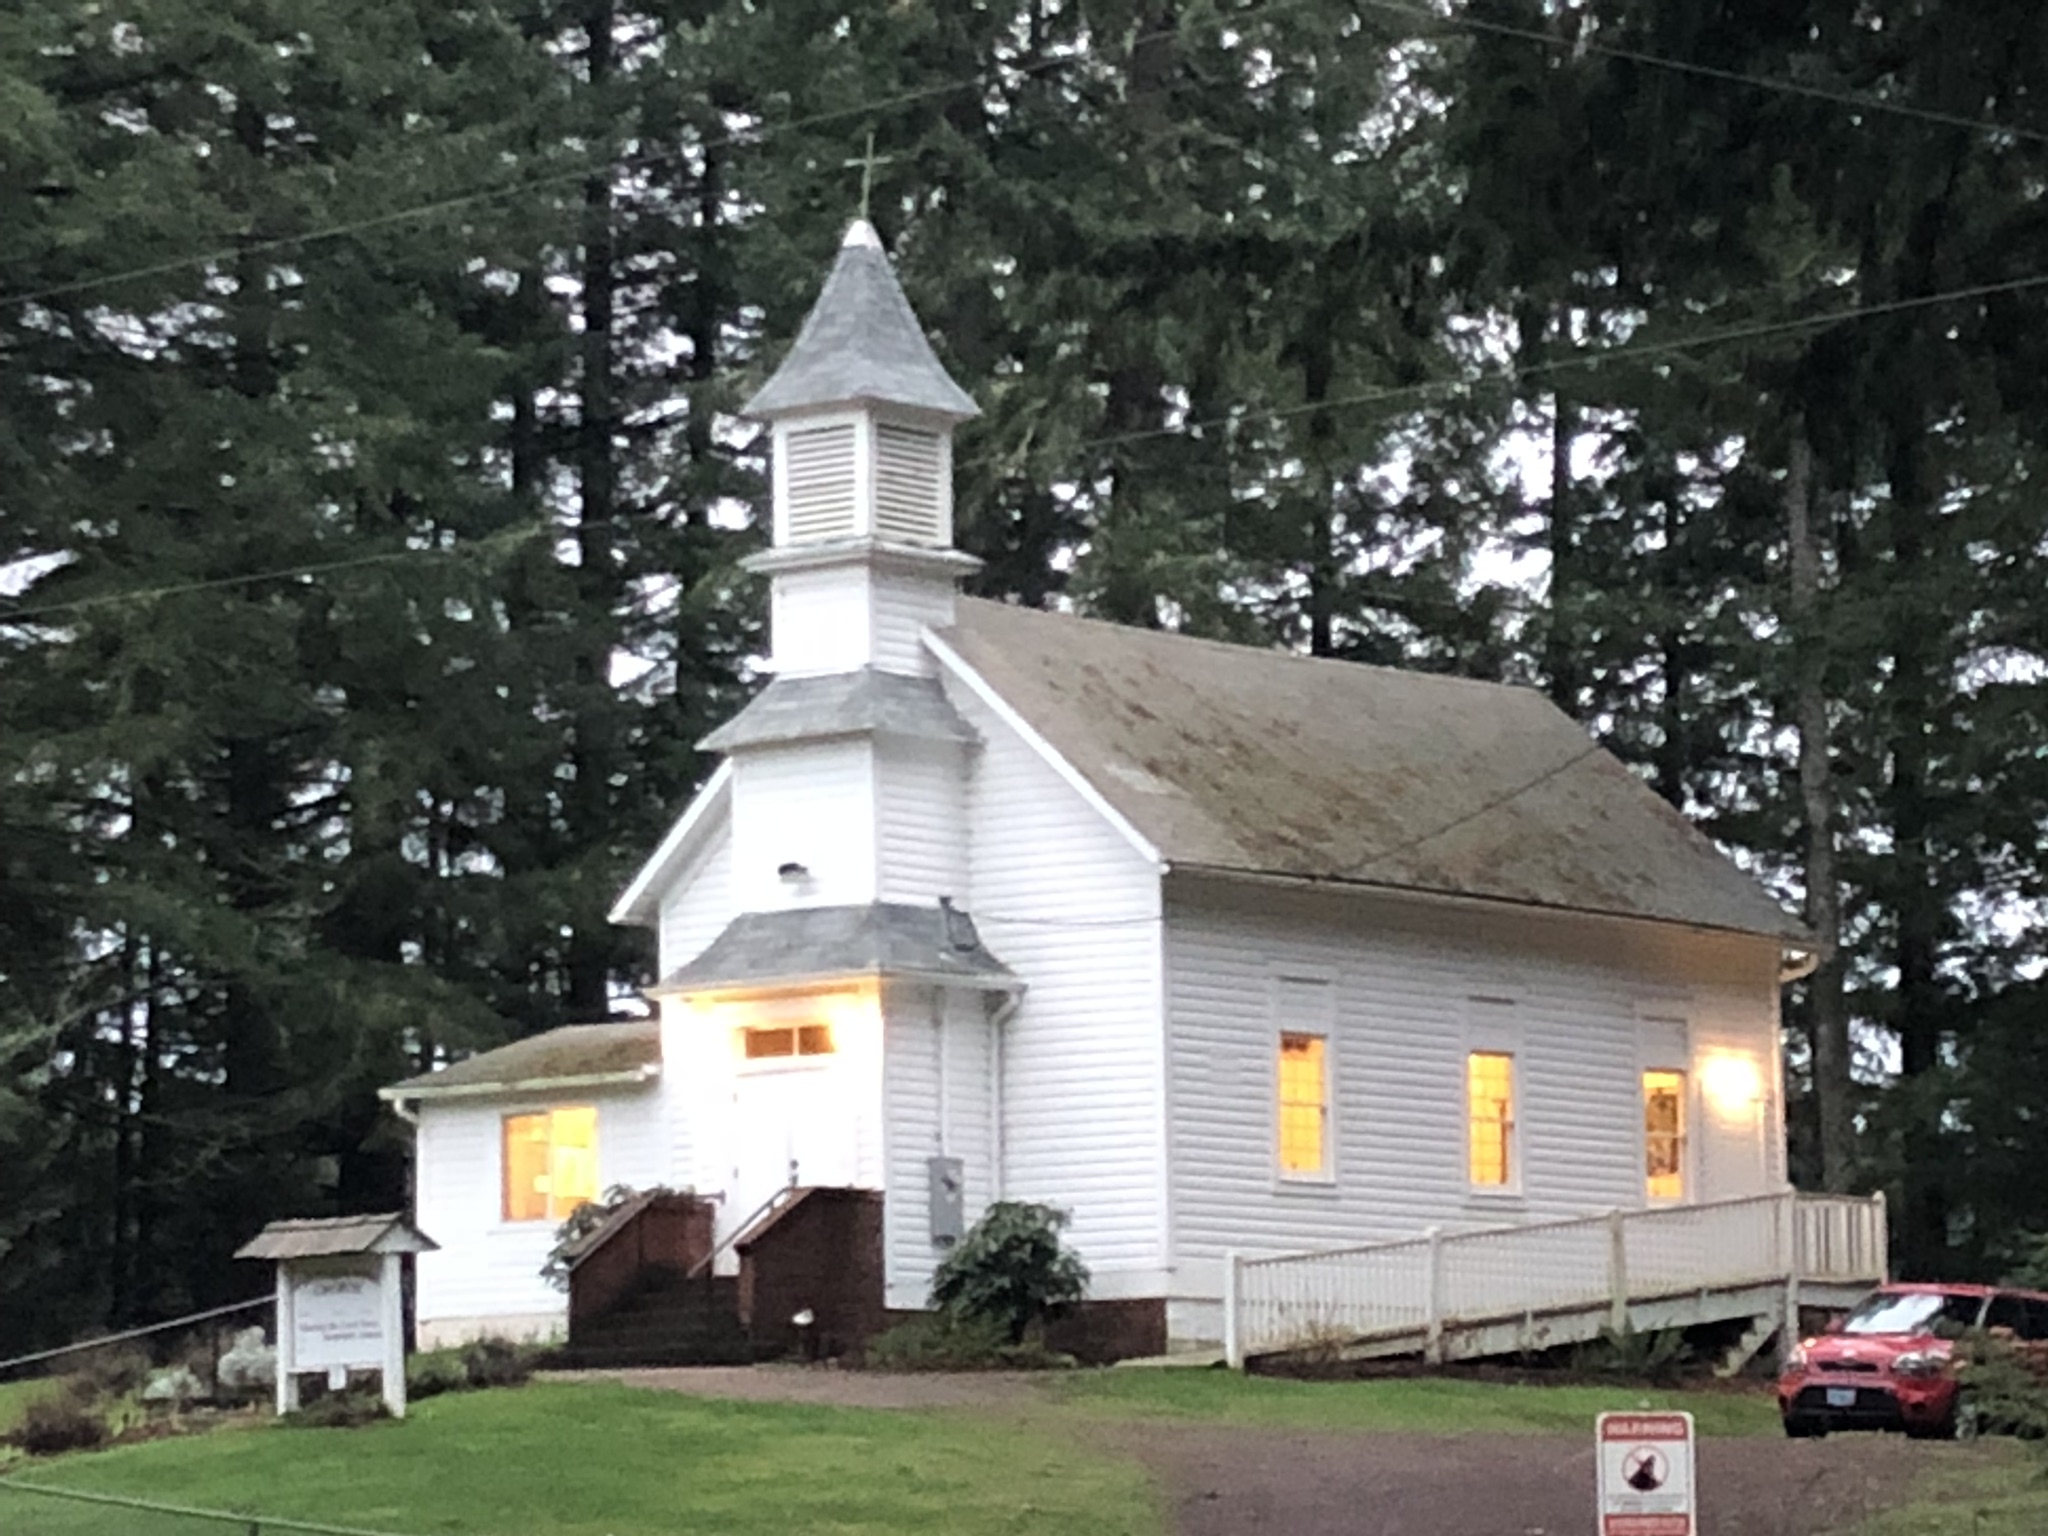 Mountain Home Community Church of Elwood - Home to one of many small, loving congregations in the InFaith family.